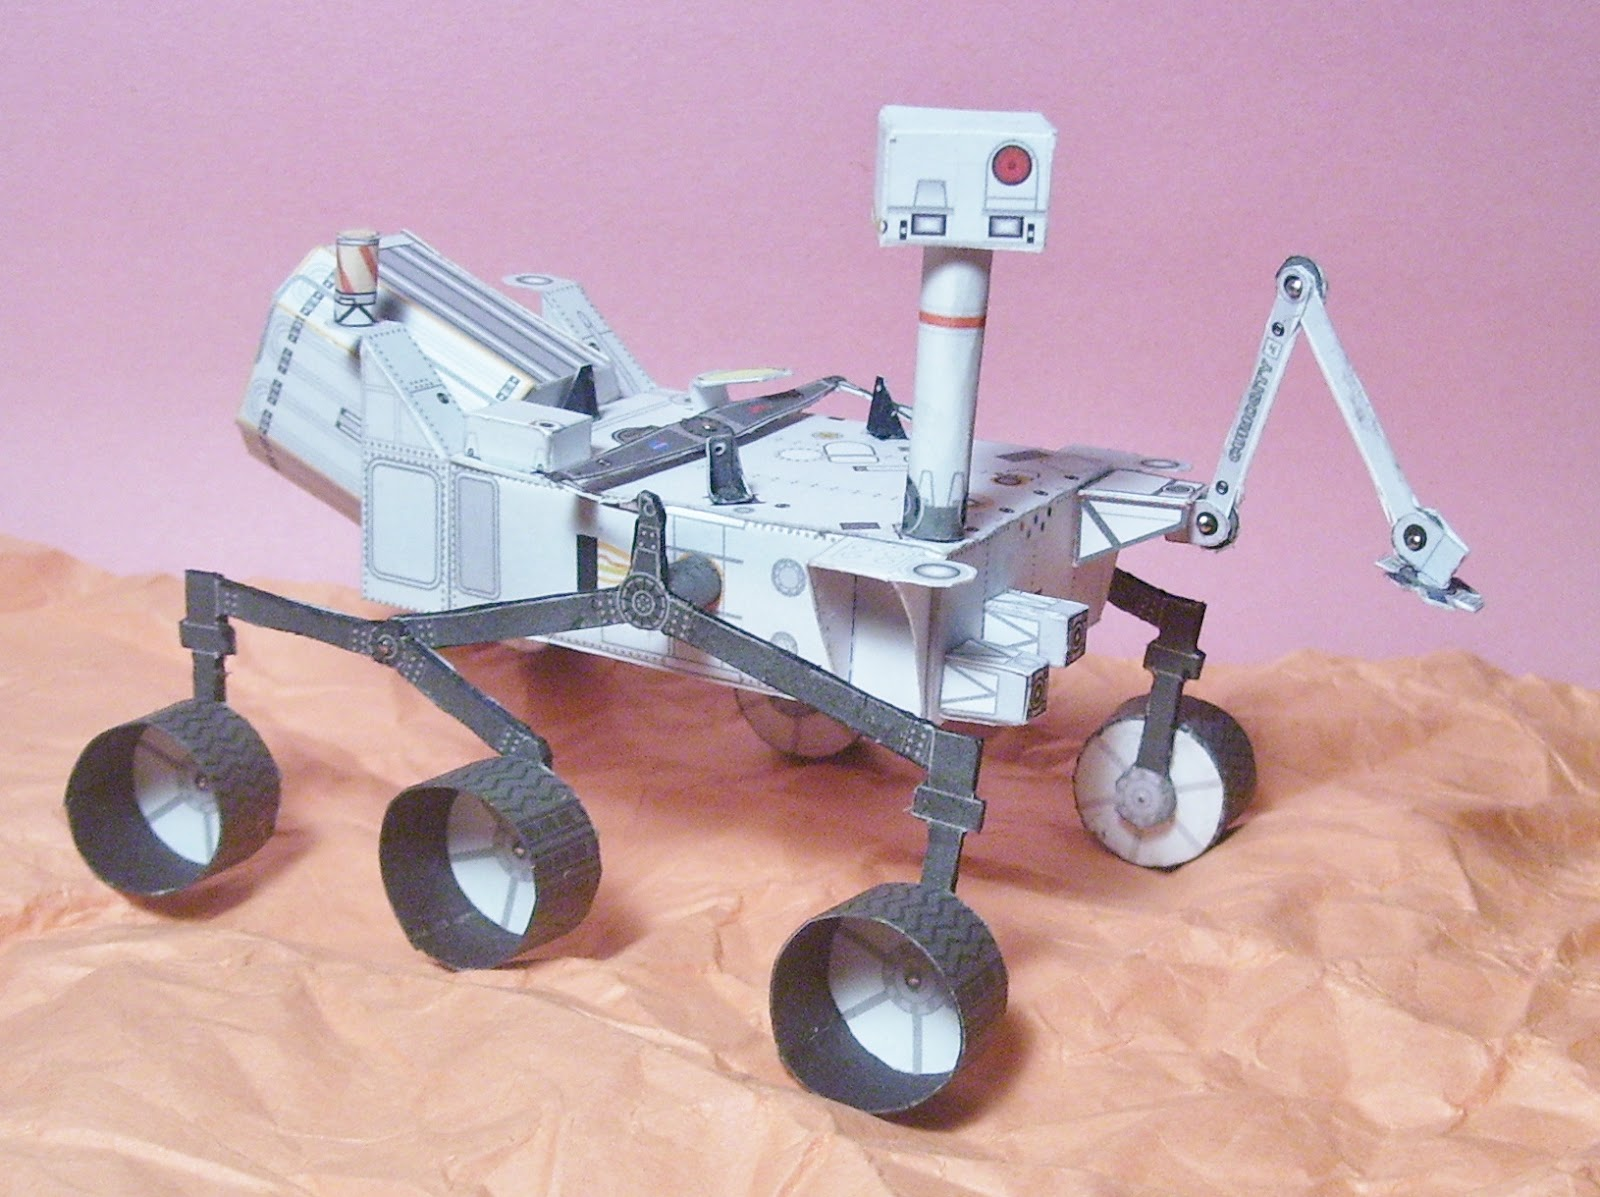 Curiosity Mars Rover - Educational Variant? - Page 2 ...